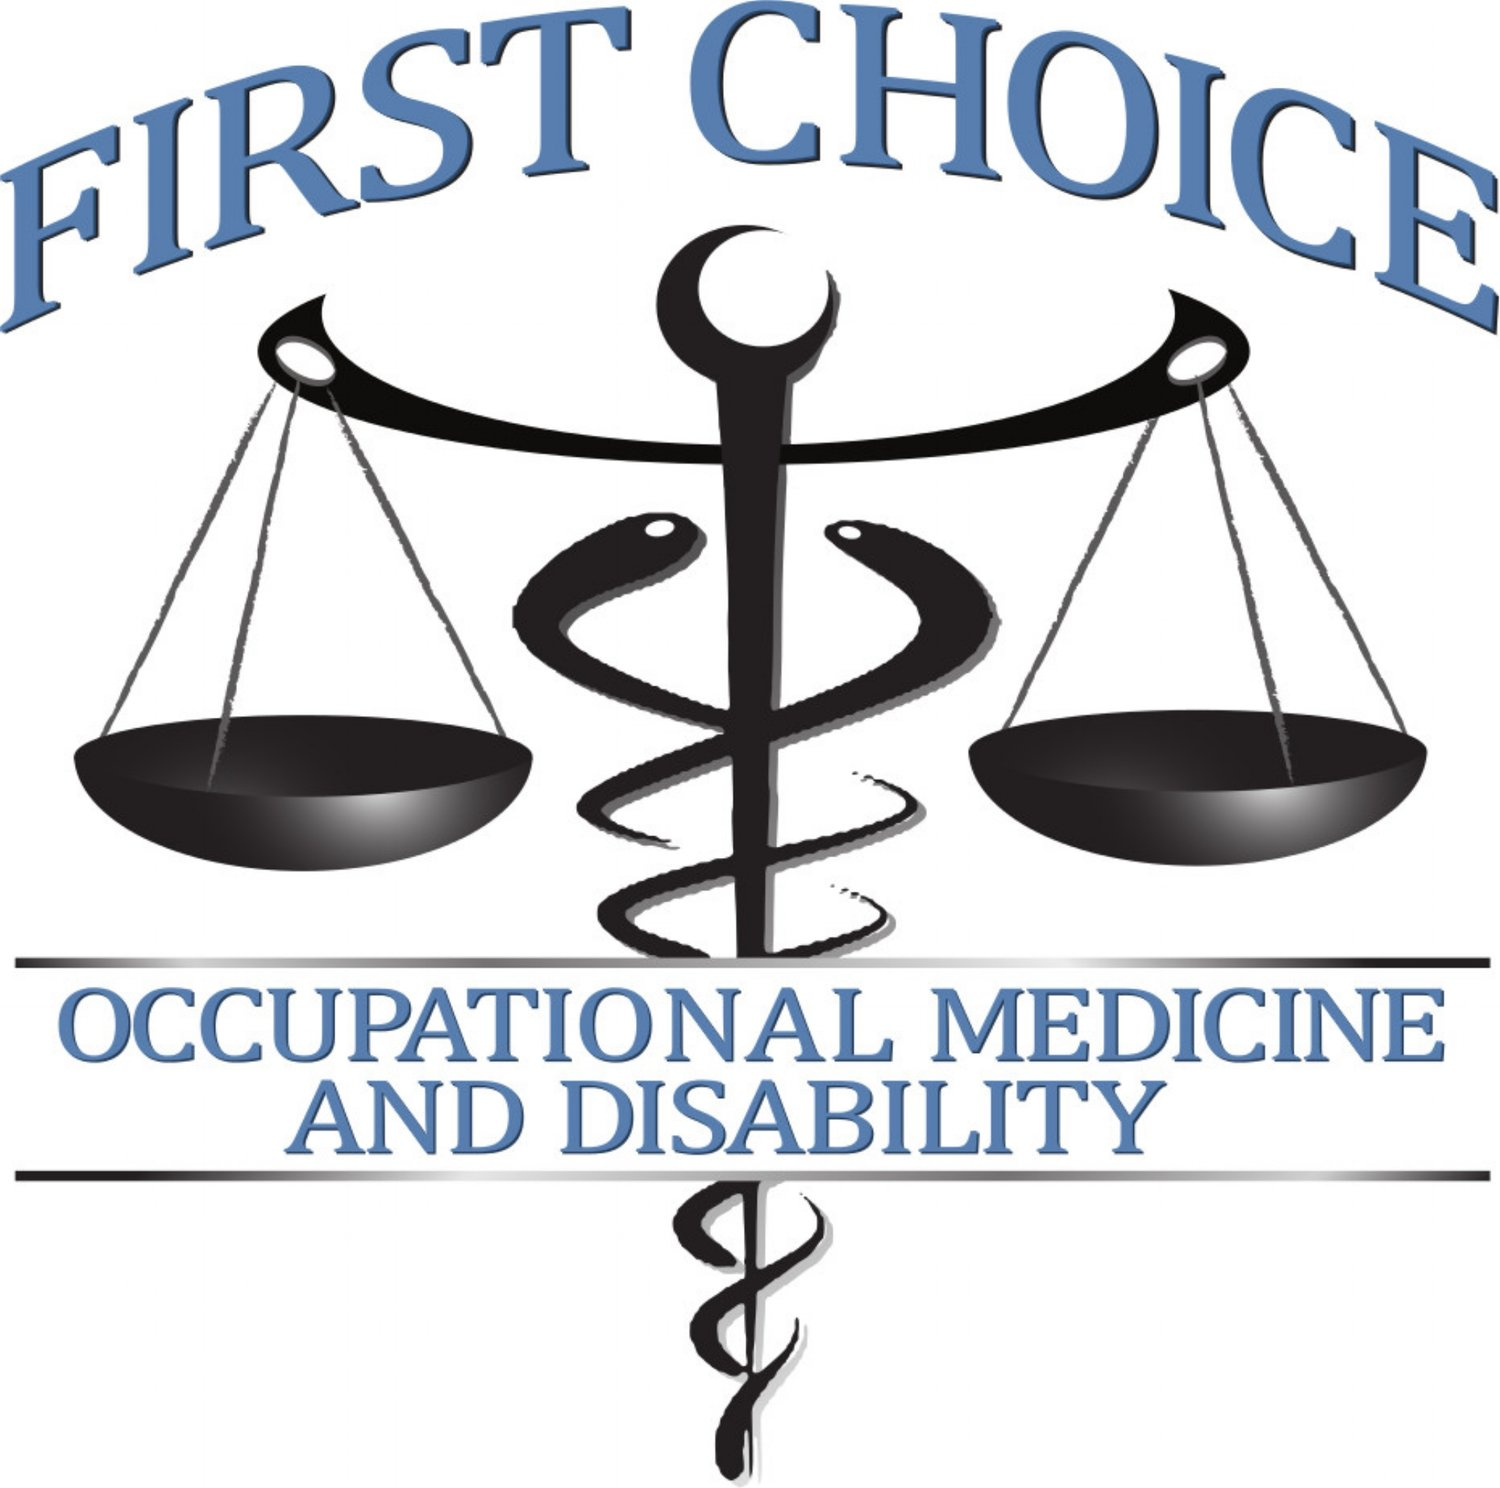 First Choice Occupational Medicine and Disability